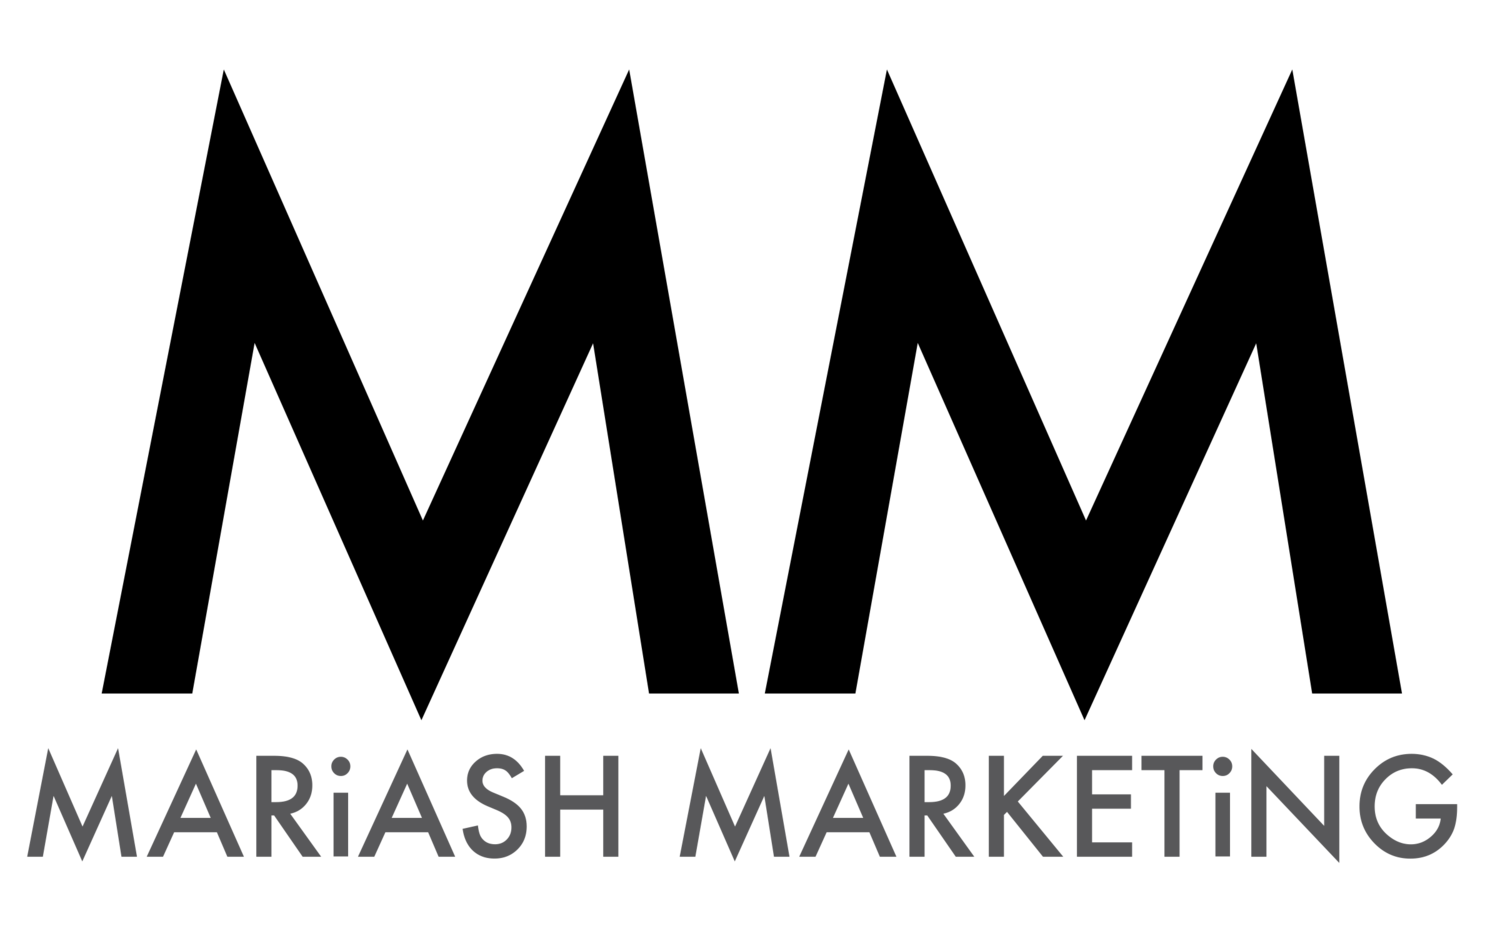 MARiASH MARKETiNG